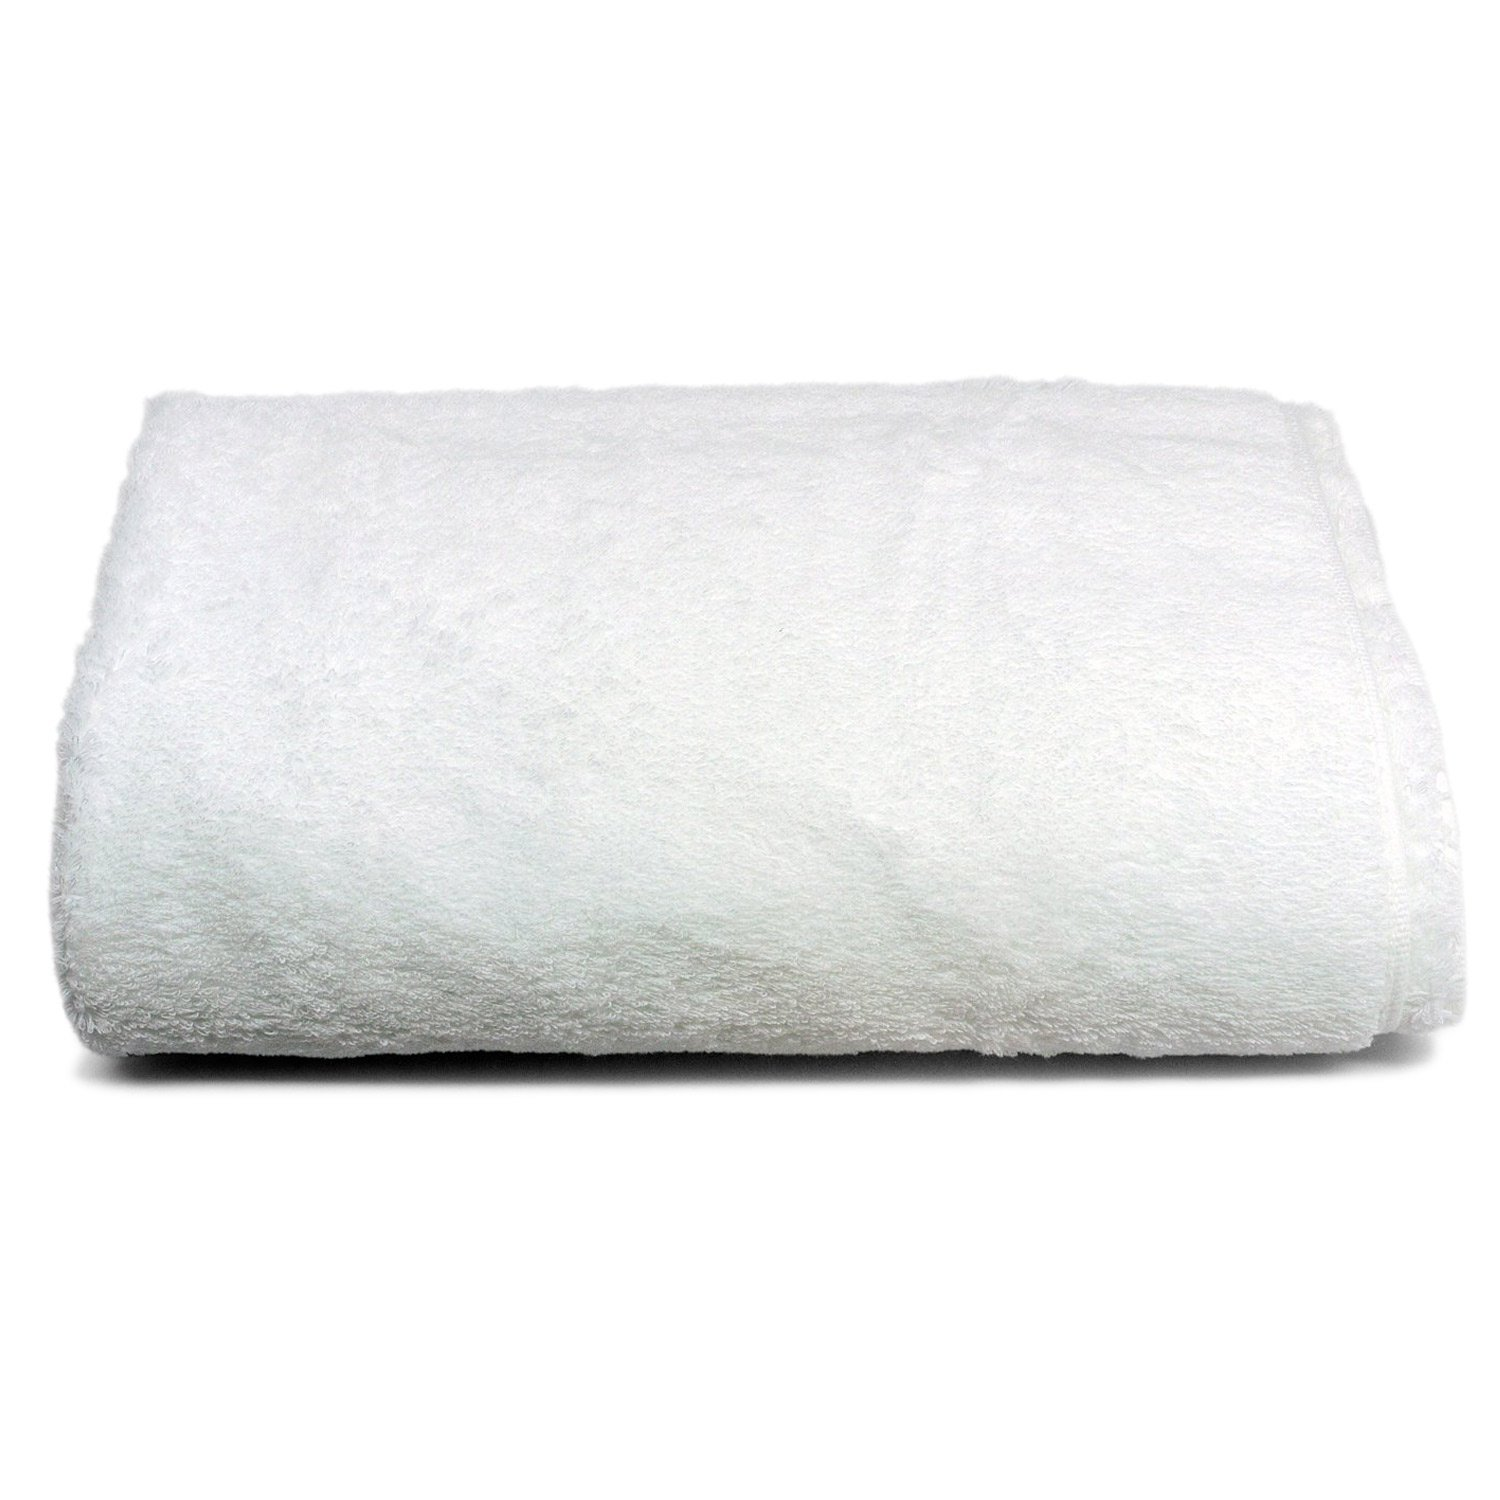 white bath towels. Amazon.com: Luxury White Bath Sheet, Egyptian Cotton, Ultra Soft \u0026 Absorbent By Winter Park Towel Co. (Oversized Large 40 72 Inches): Home Kitchen Towels